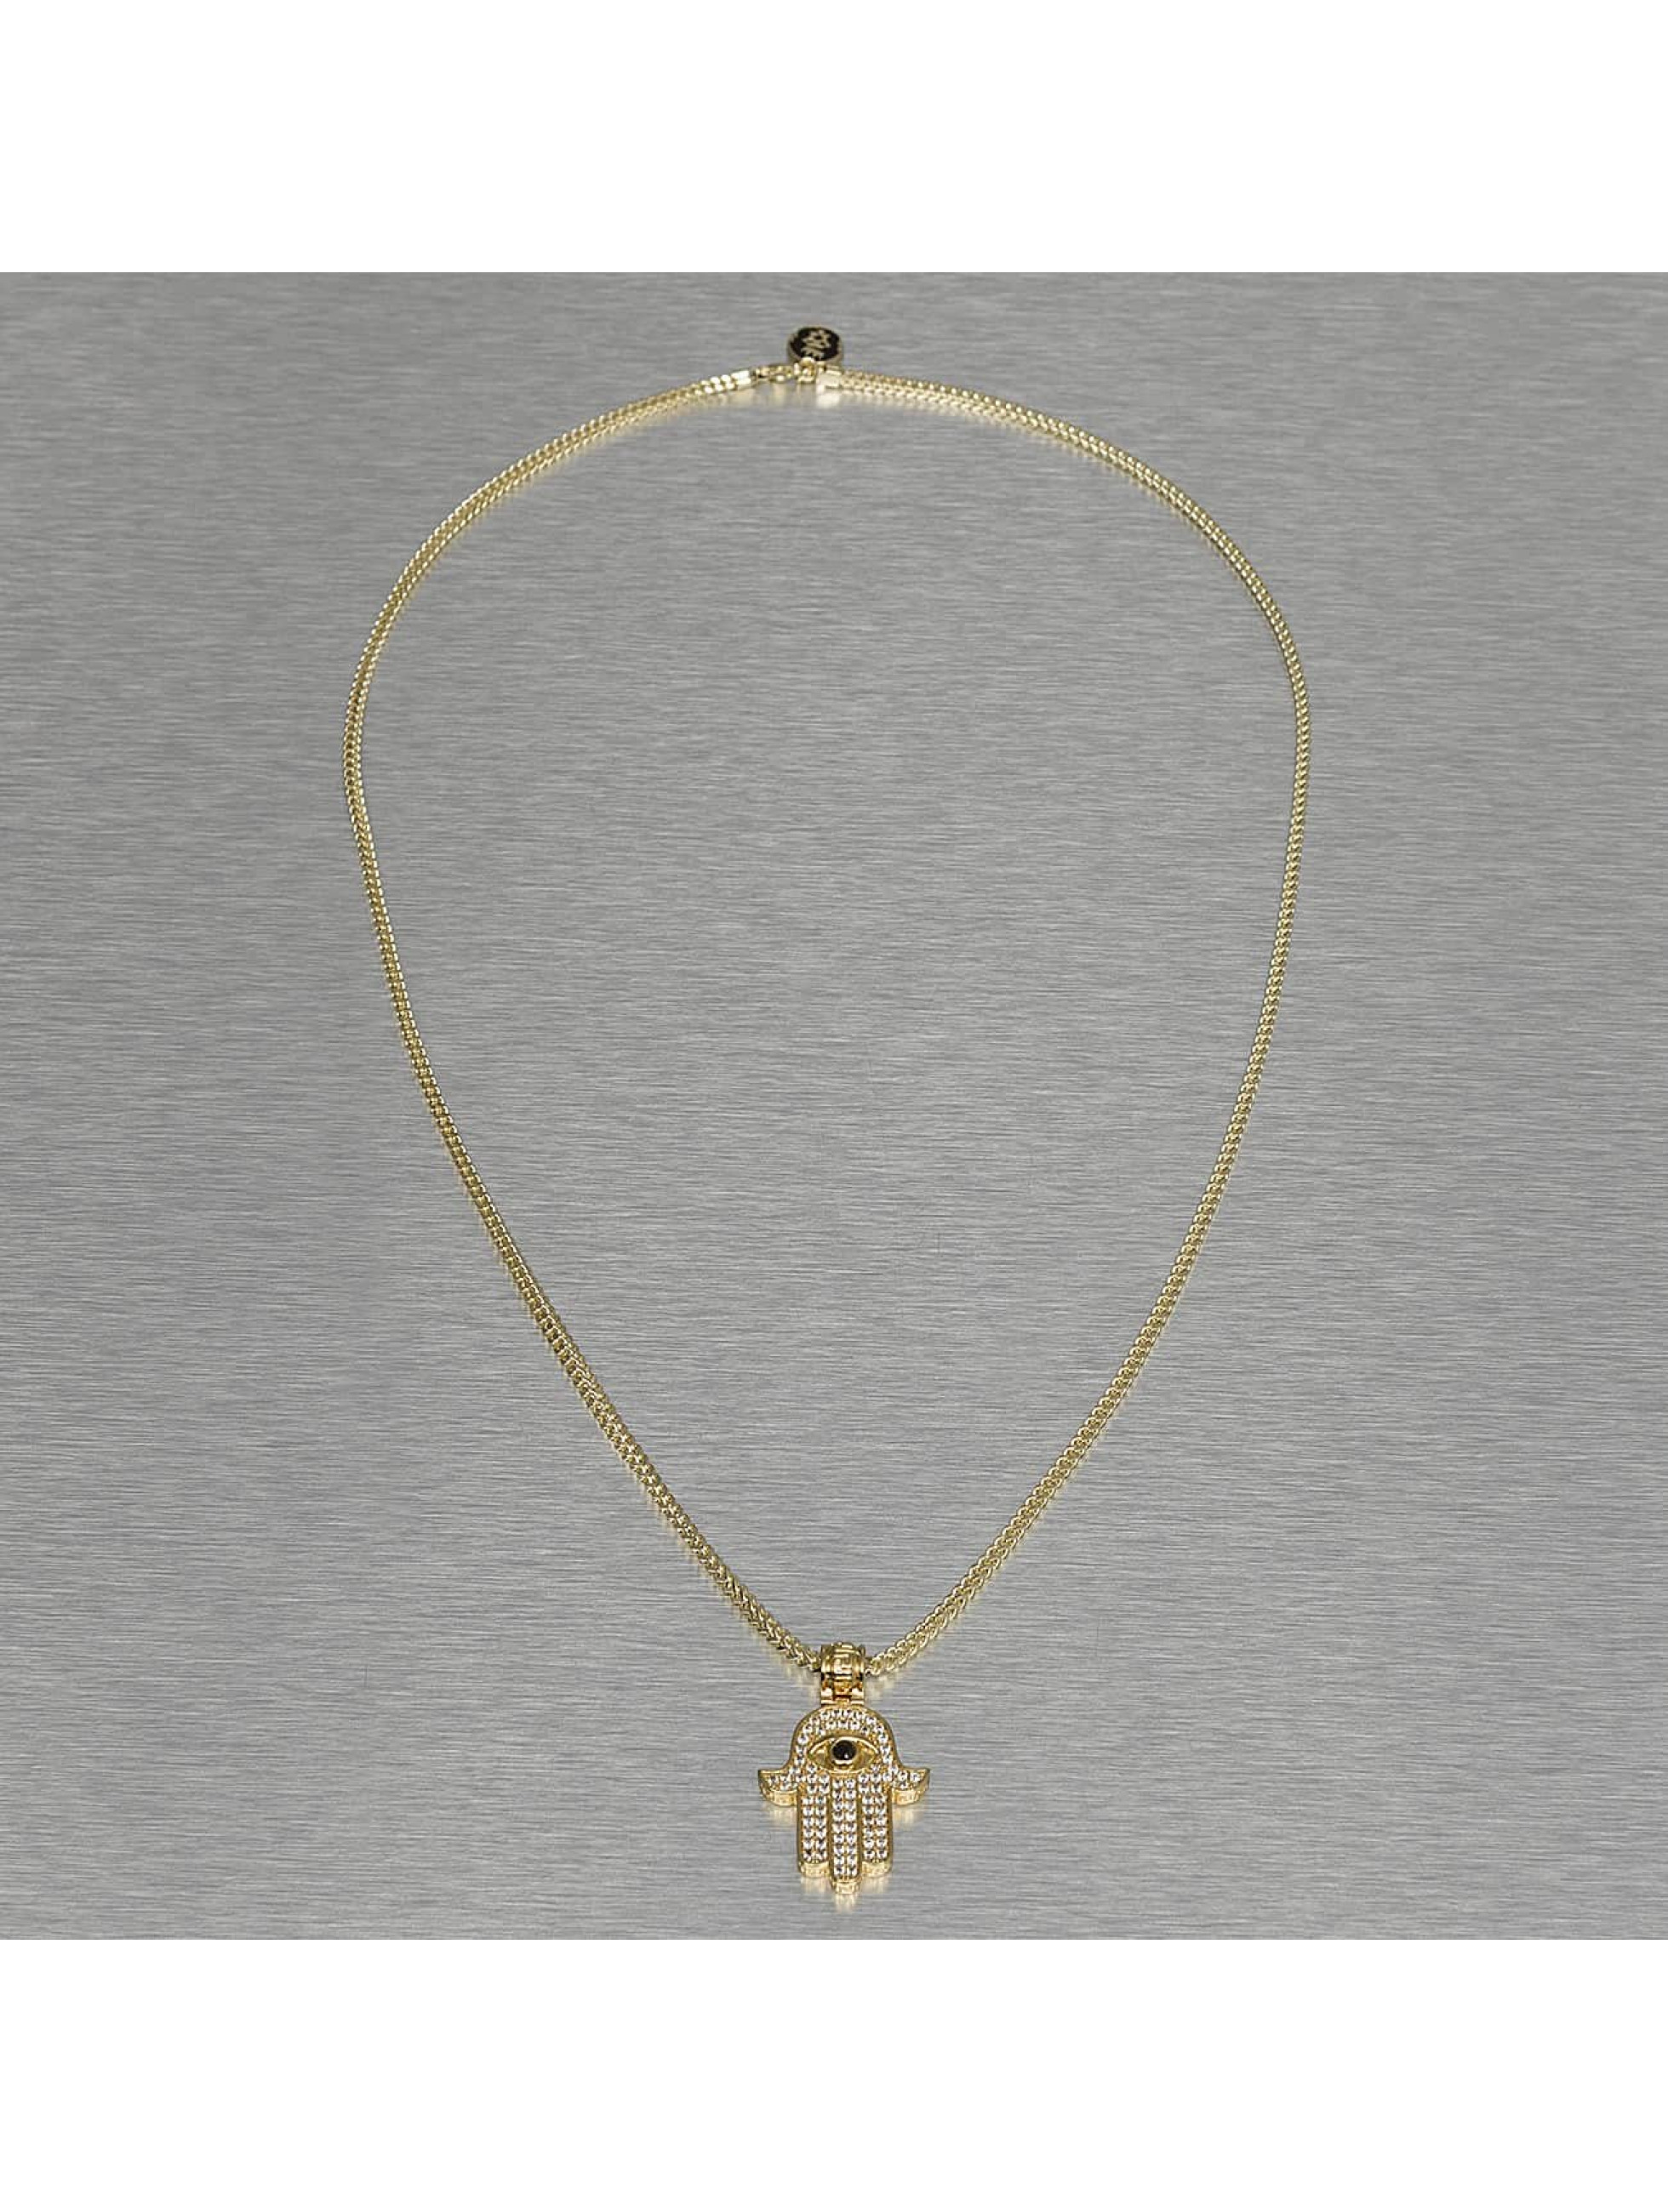 KING ICE Necklace Hamsa gold colored